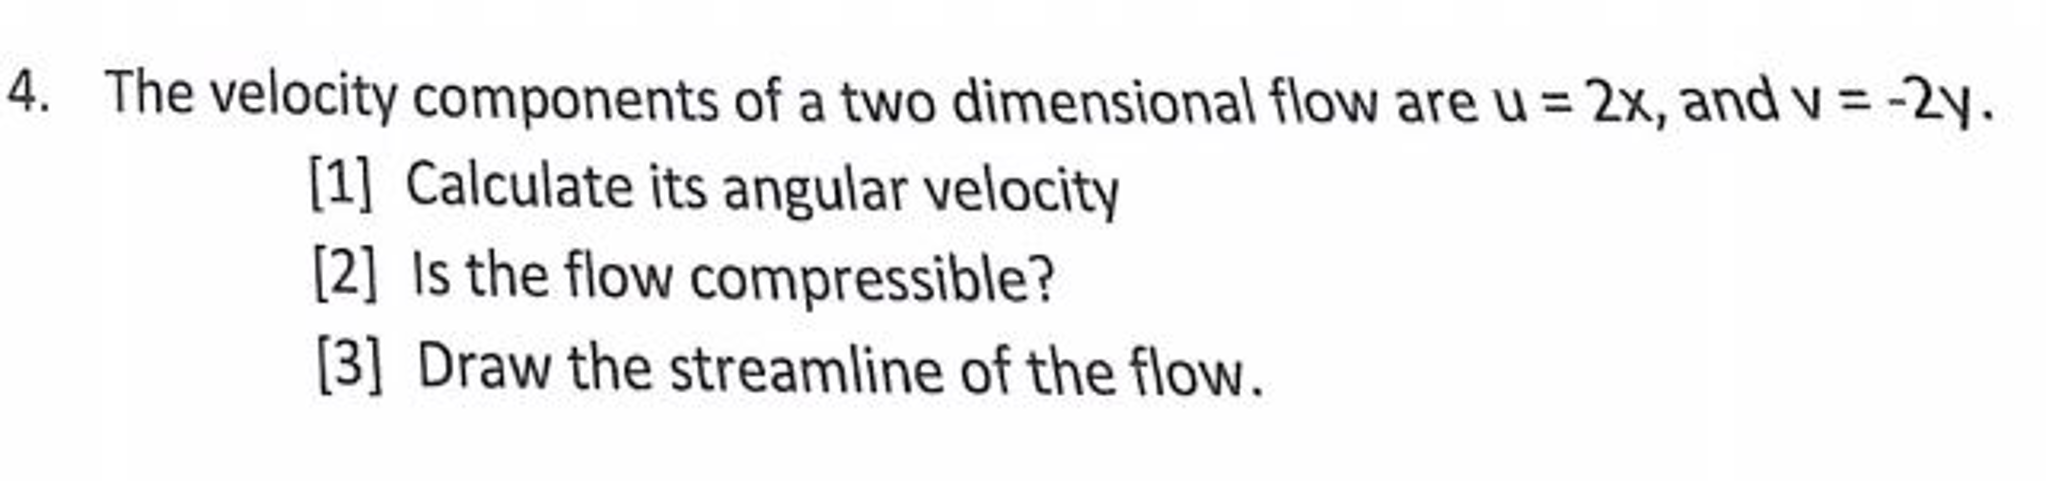 The Velocityponents Of A Two Dimensional Flow